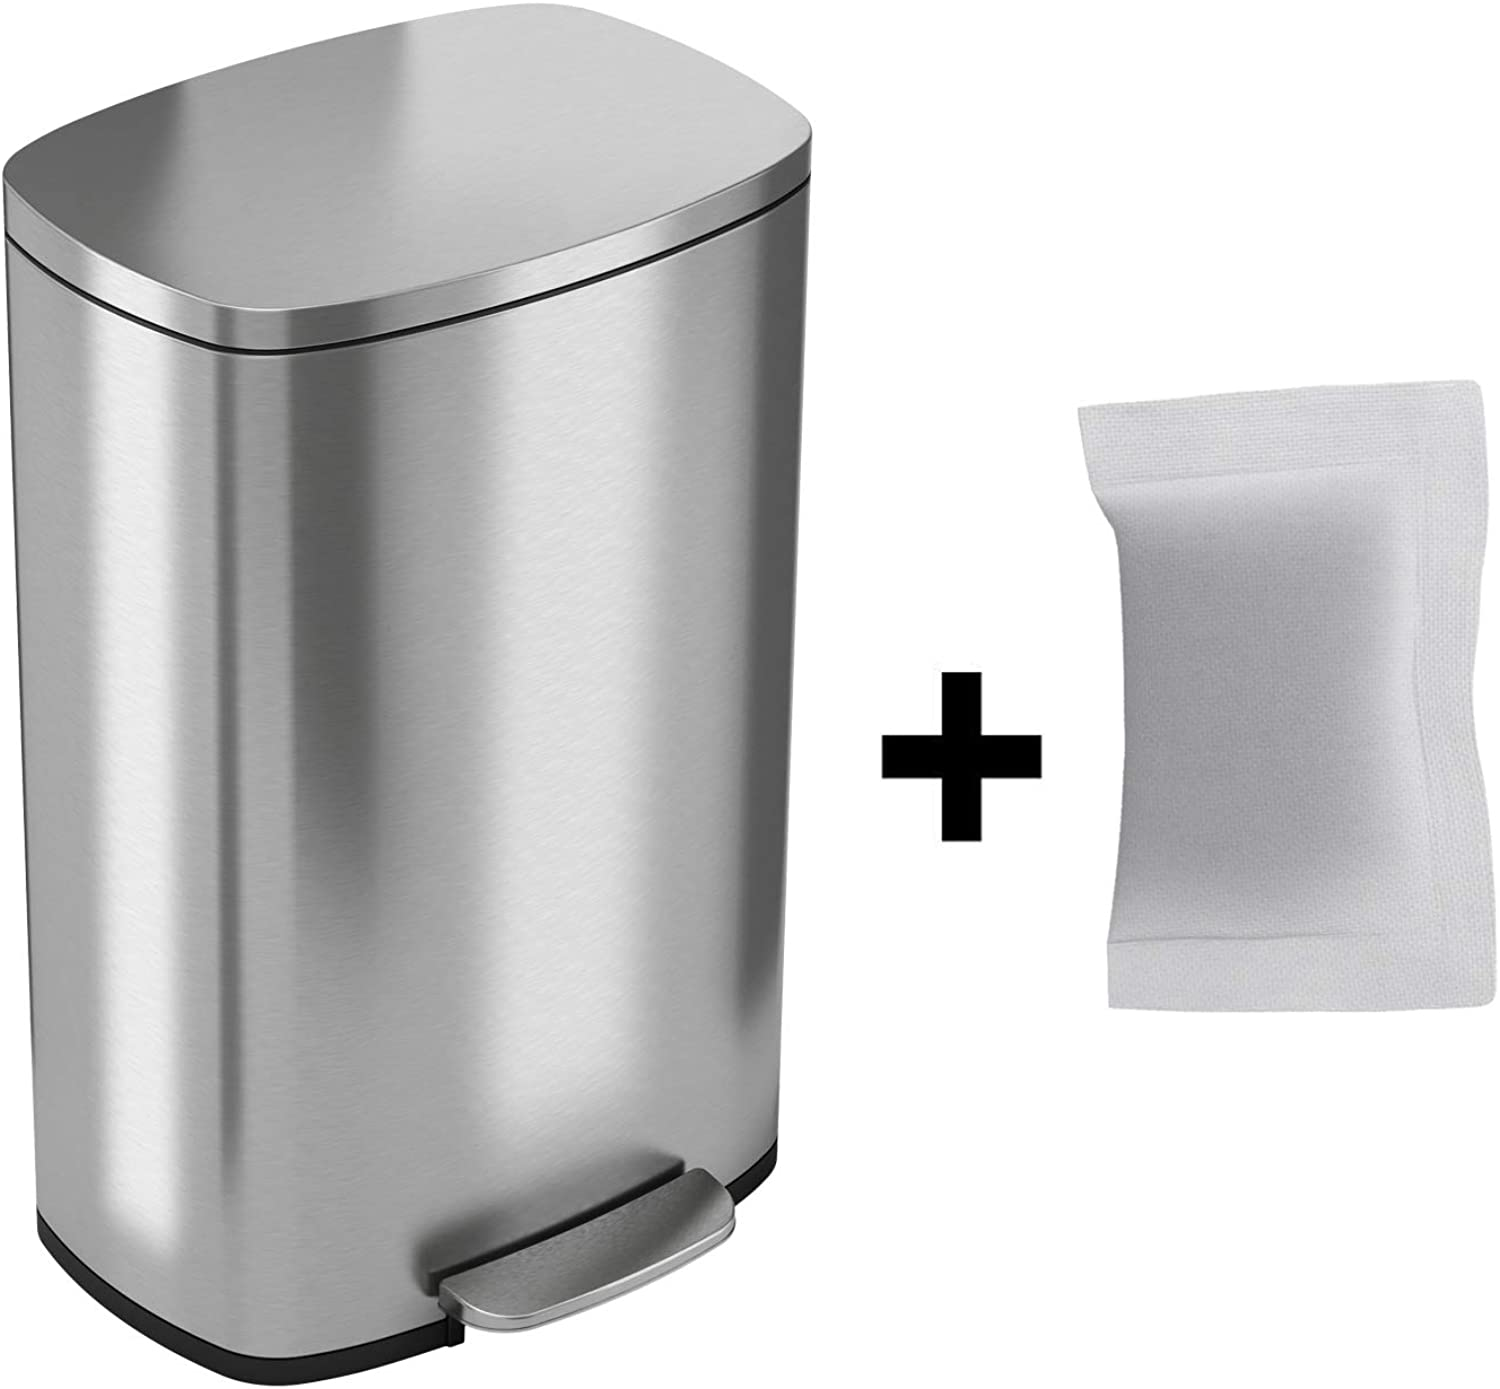 ITouchless SoftStep 13 Gallon Step Trash Can with Odor Filter & Removable Inner Bucket, Stainless Steel, 50 Liter Silver